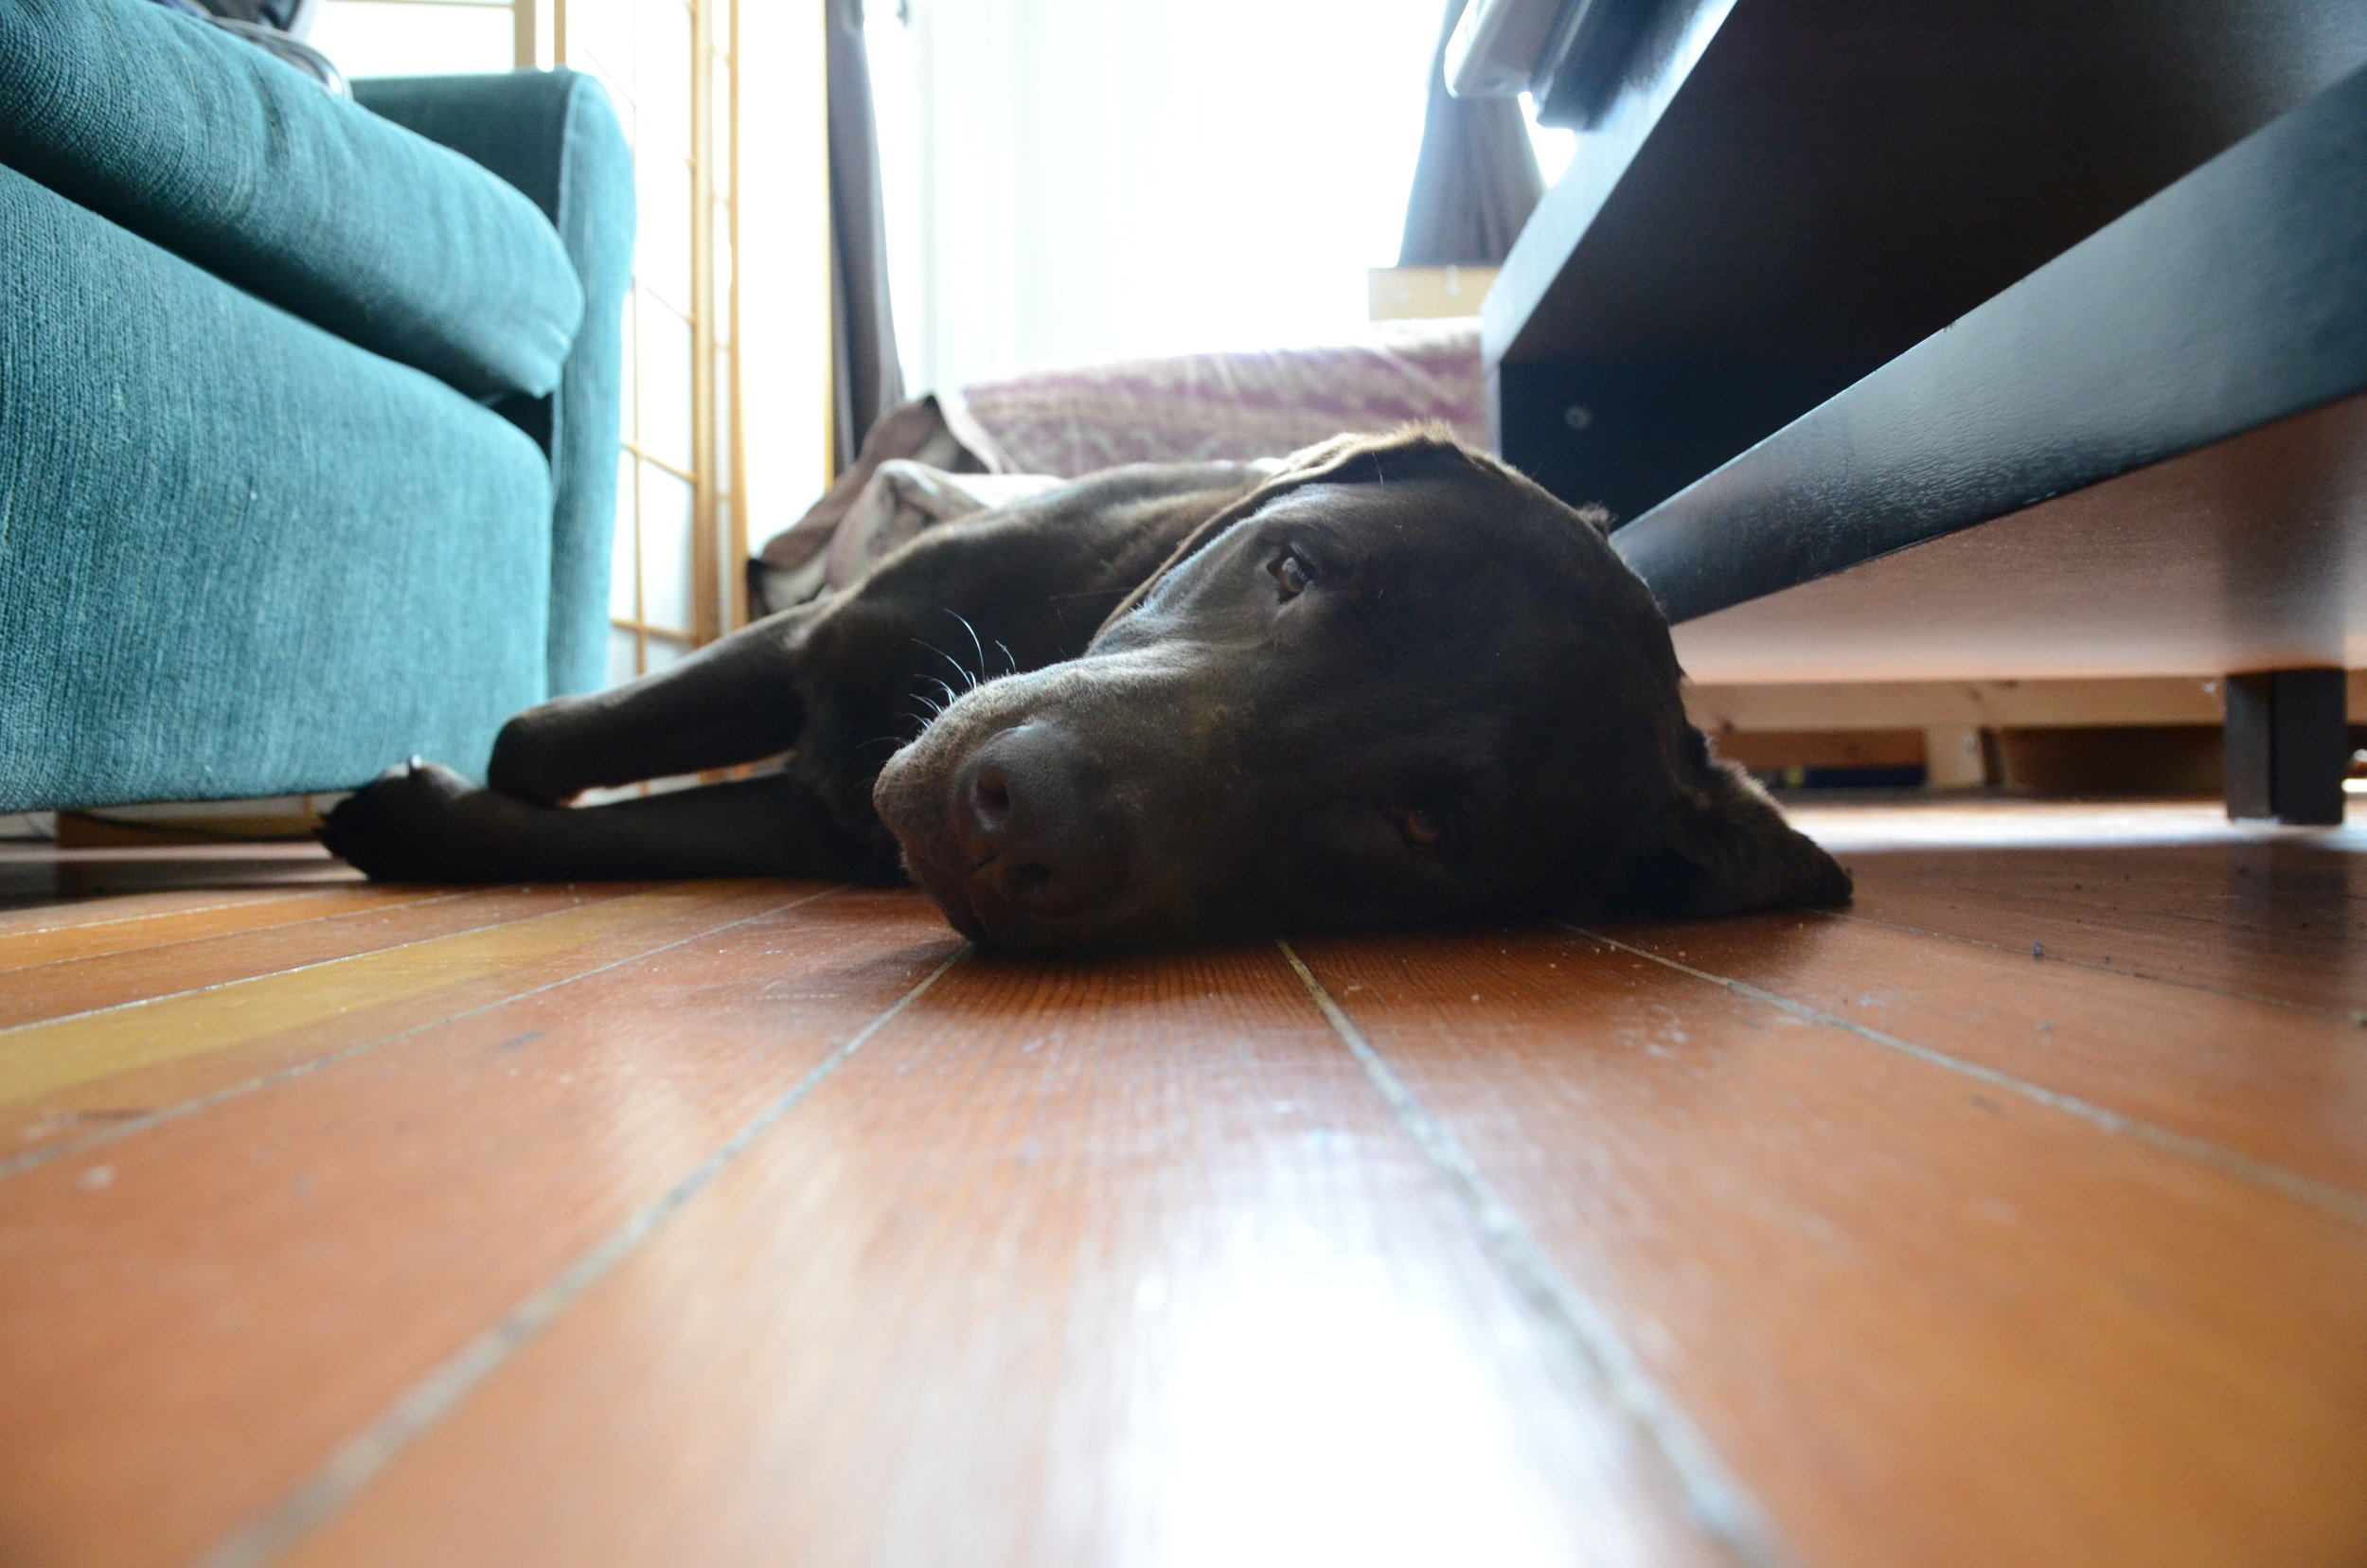 mr-pups-is-tired_5732930432_o.jpg